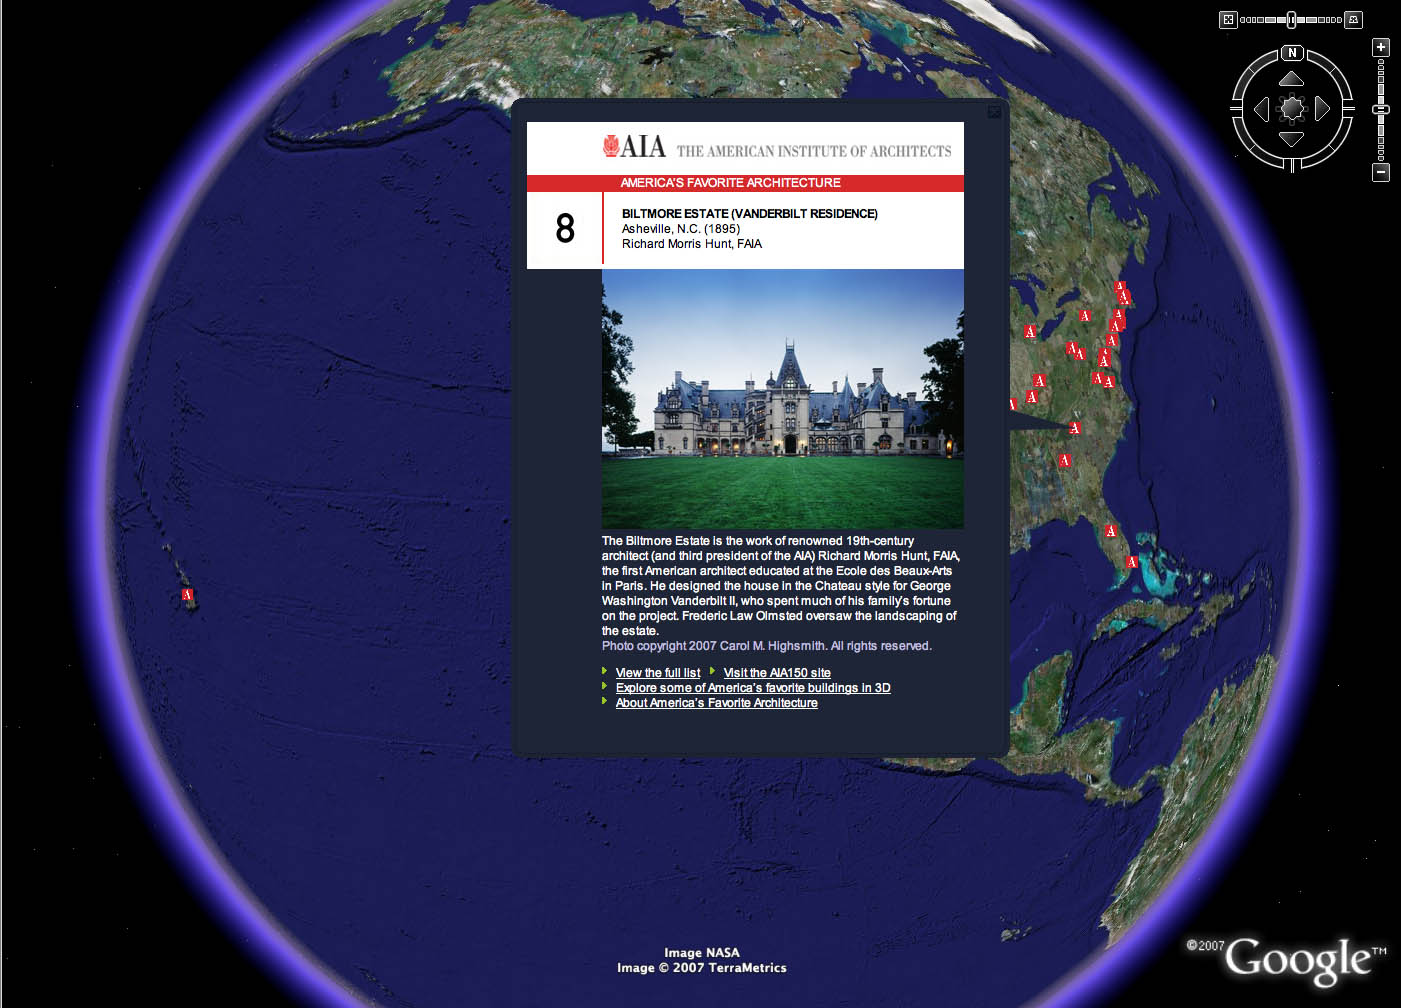 Project image 1 for Google Earth Layer, American Institute of Architects